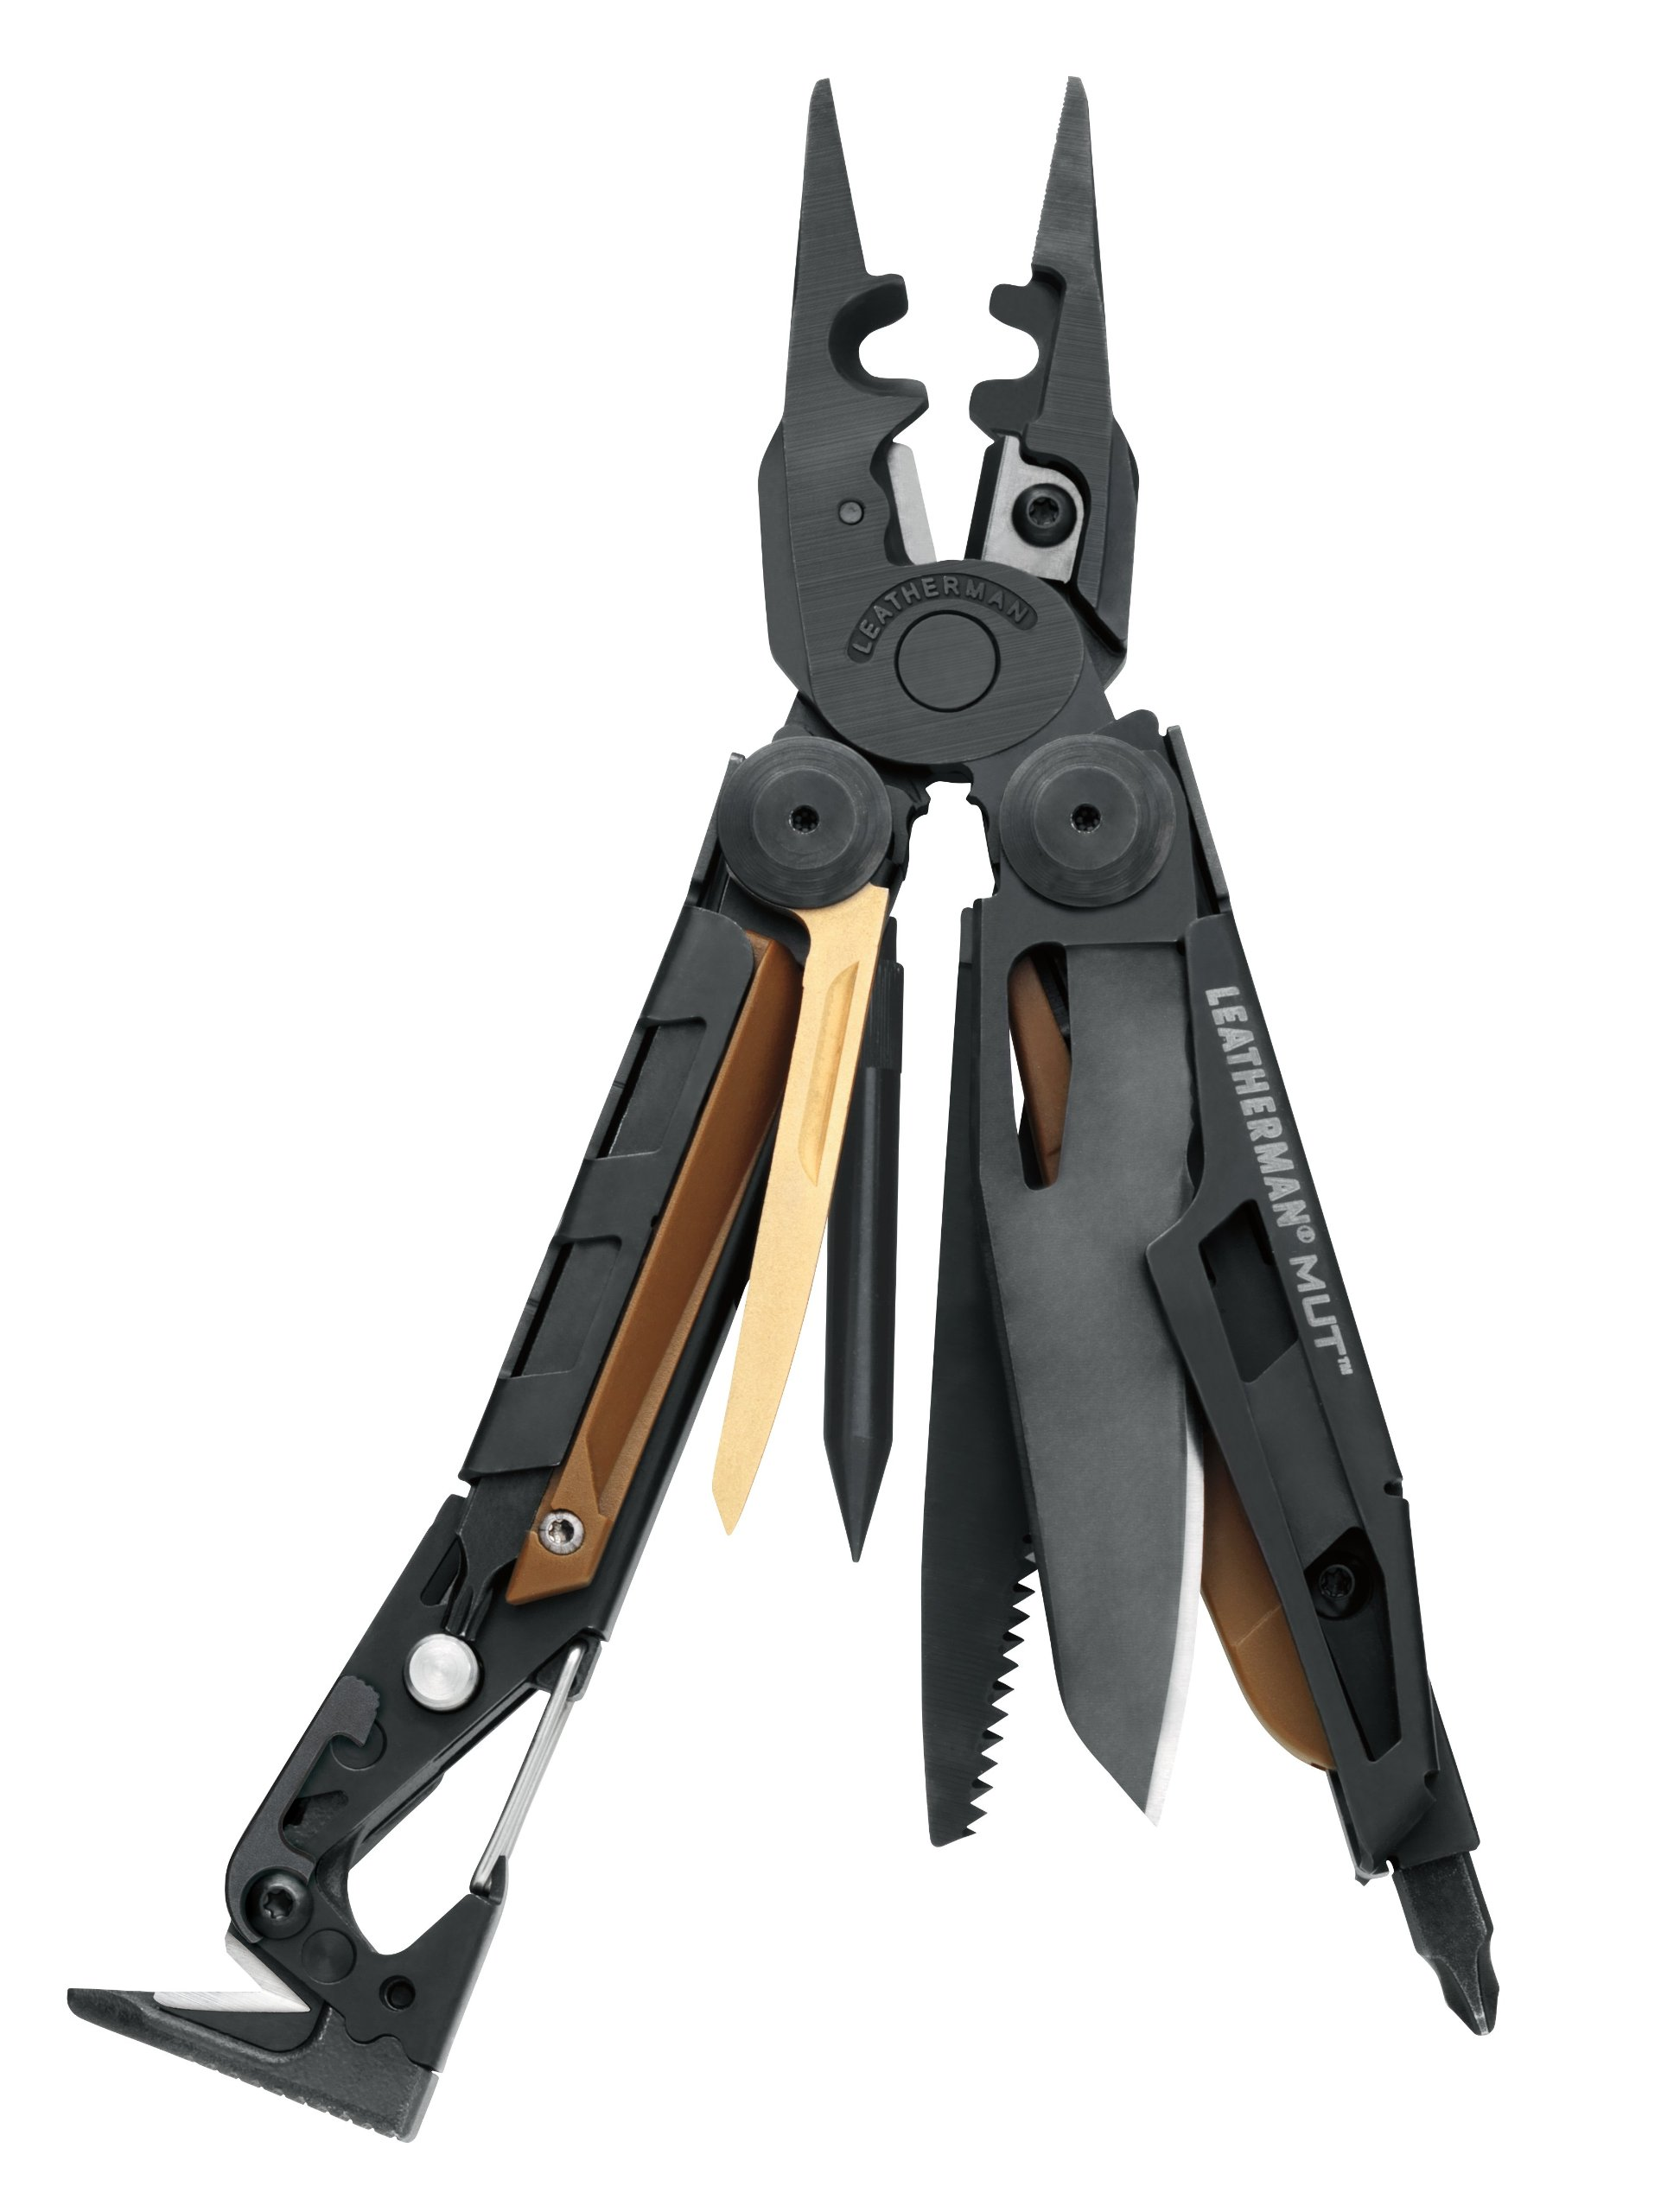 Leatherman - MUT EOD Multitool, Black with MOLLE Black Sheat